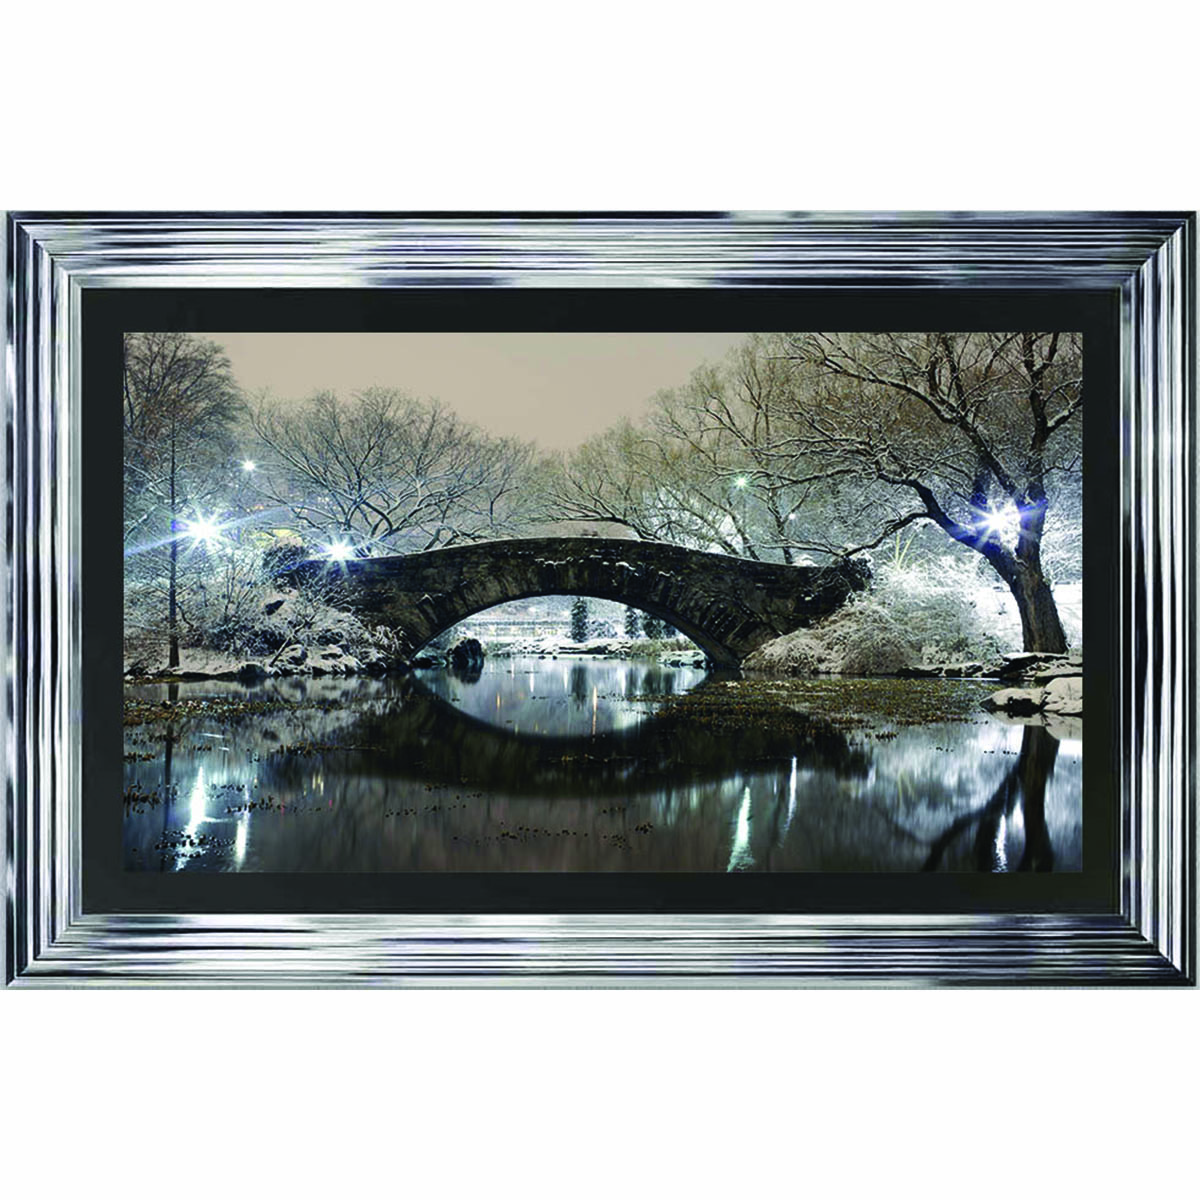 New York Gapstow Bridge Framed Liquid Artwork